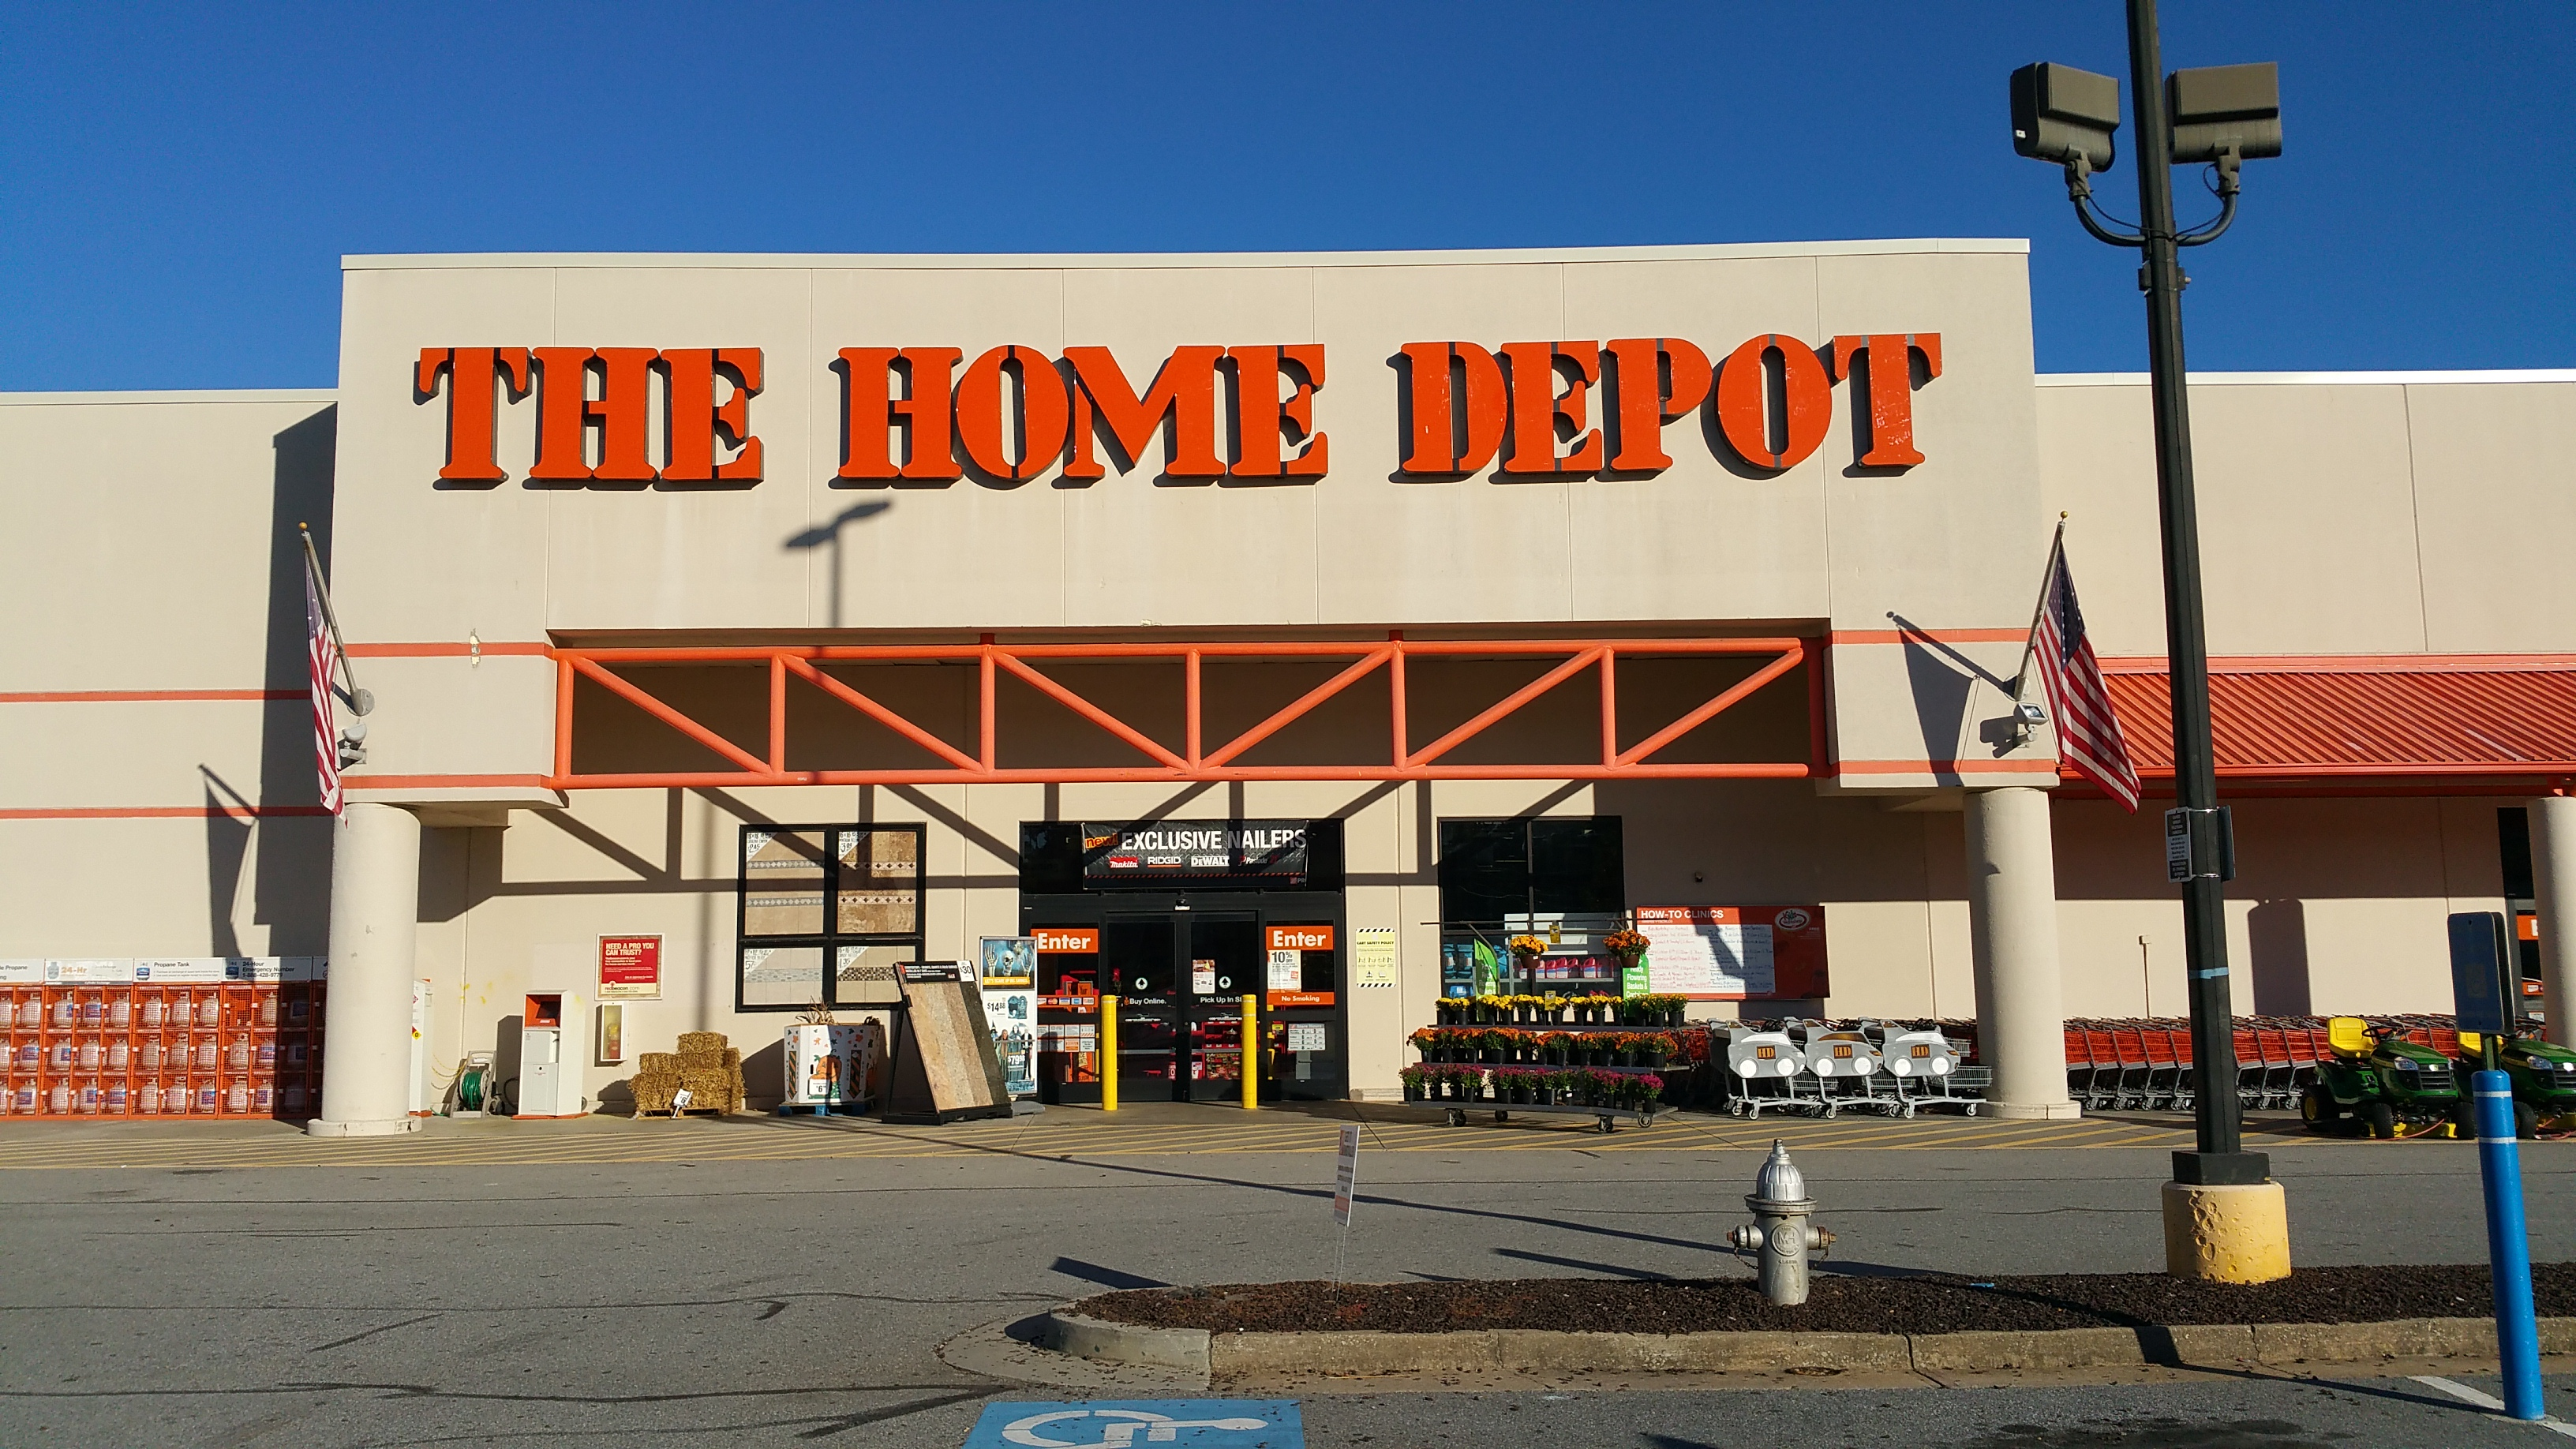 The Home Depot in Lilburn, GA, photo #11